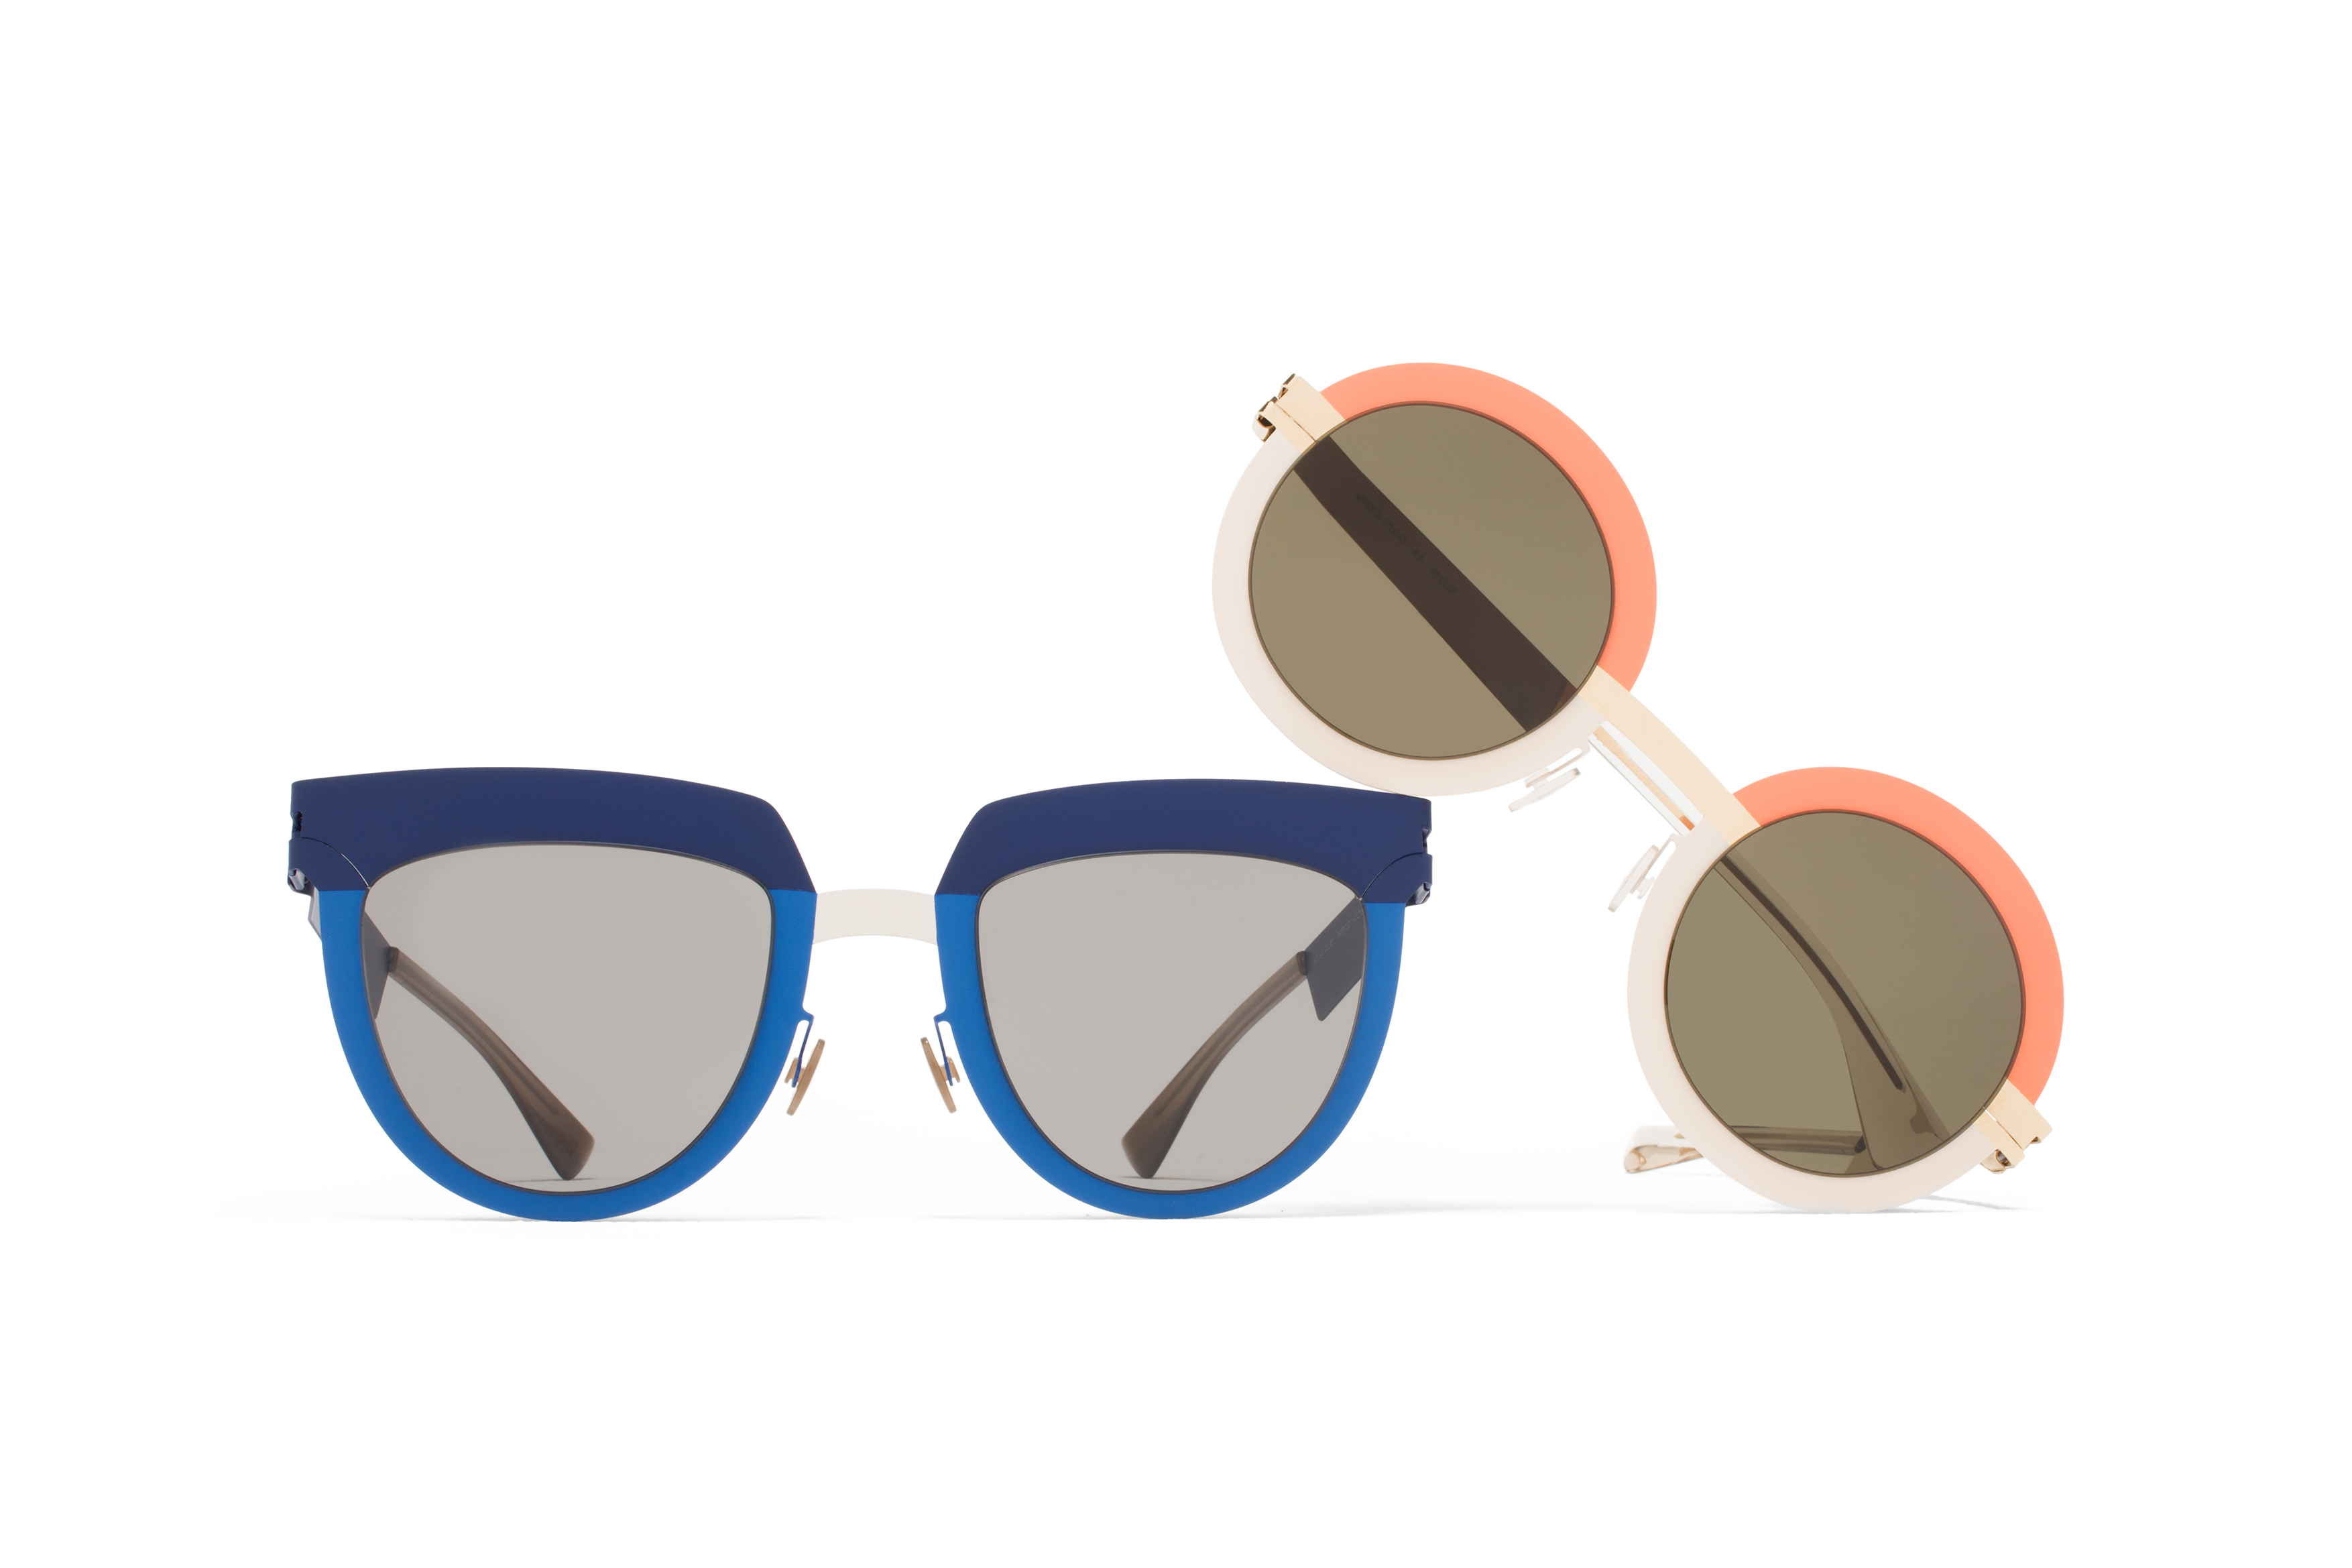 MYKITA Studio Sun Studio S10 Blue Sky Modules Grey Solid S9 Sunny Sky Modules Grey Solid Gs